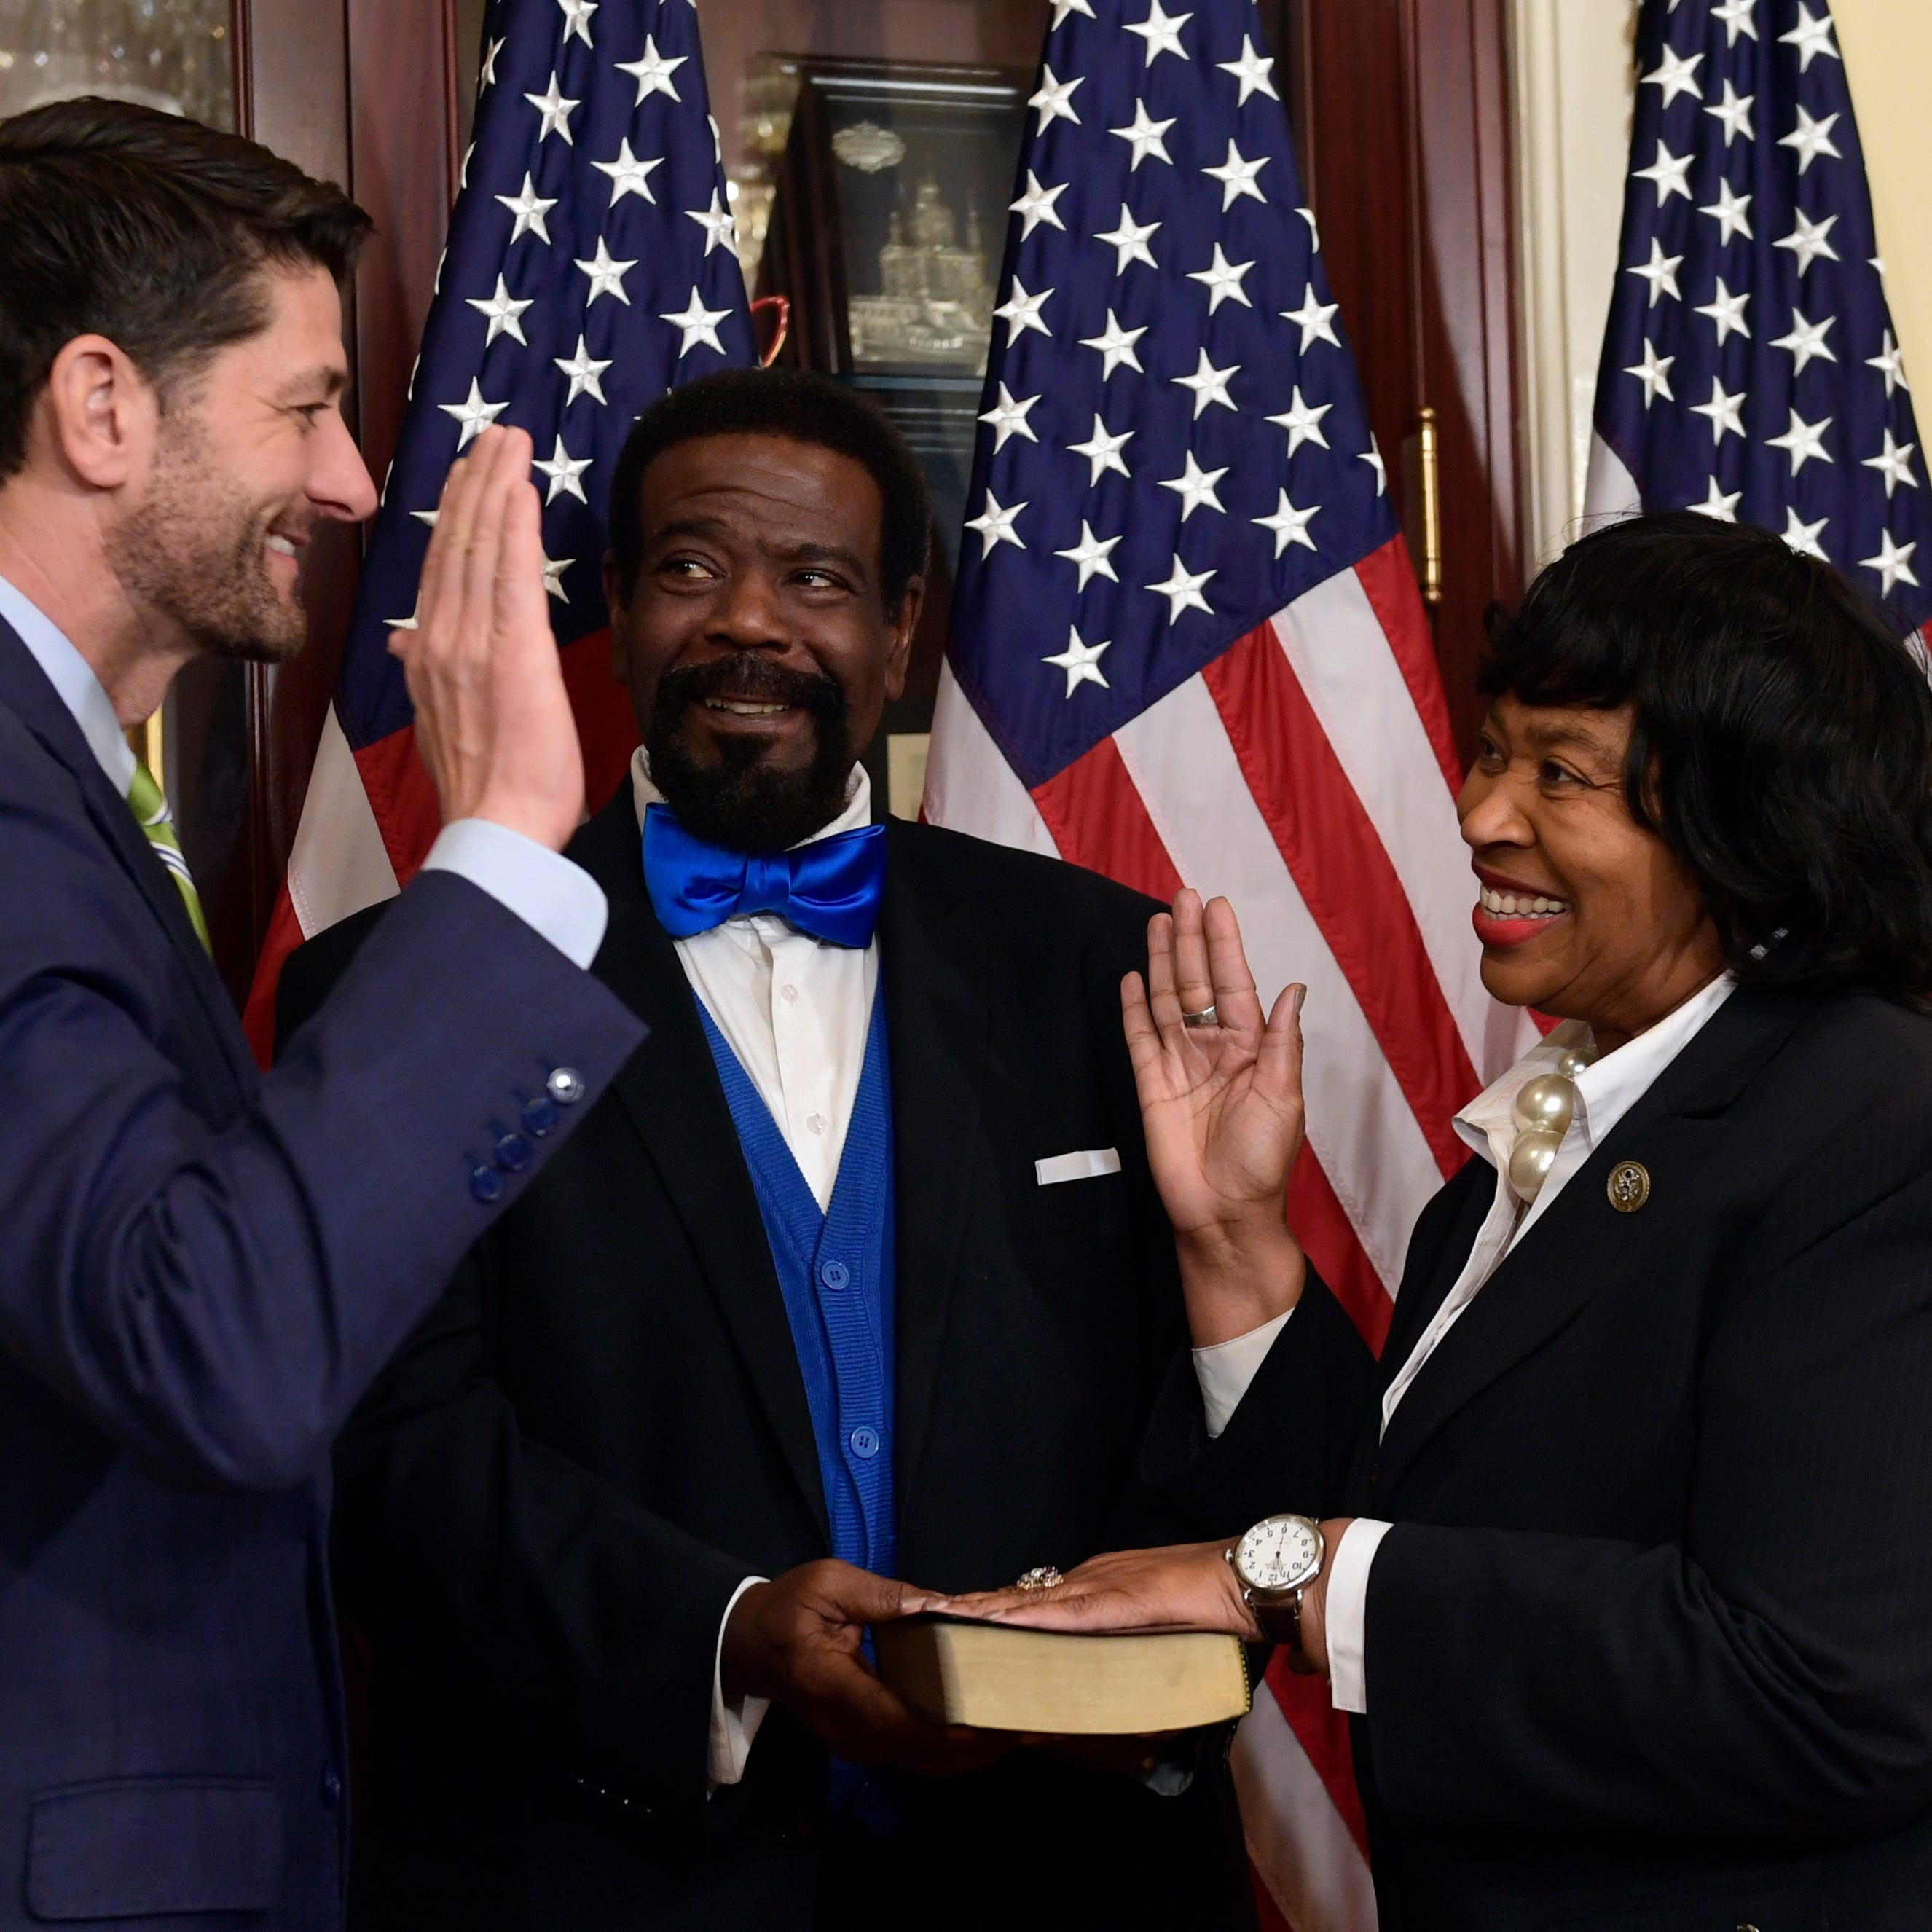 Jones sworn into Congress after deal reached